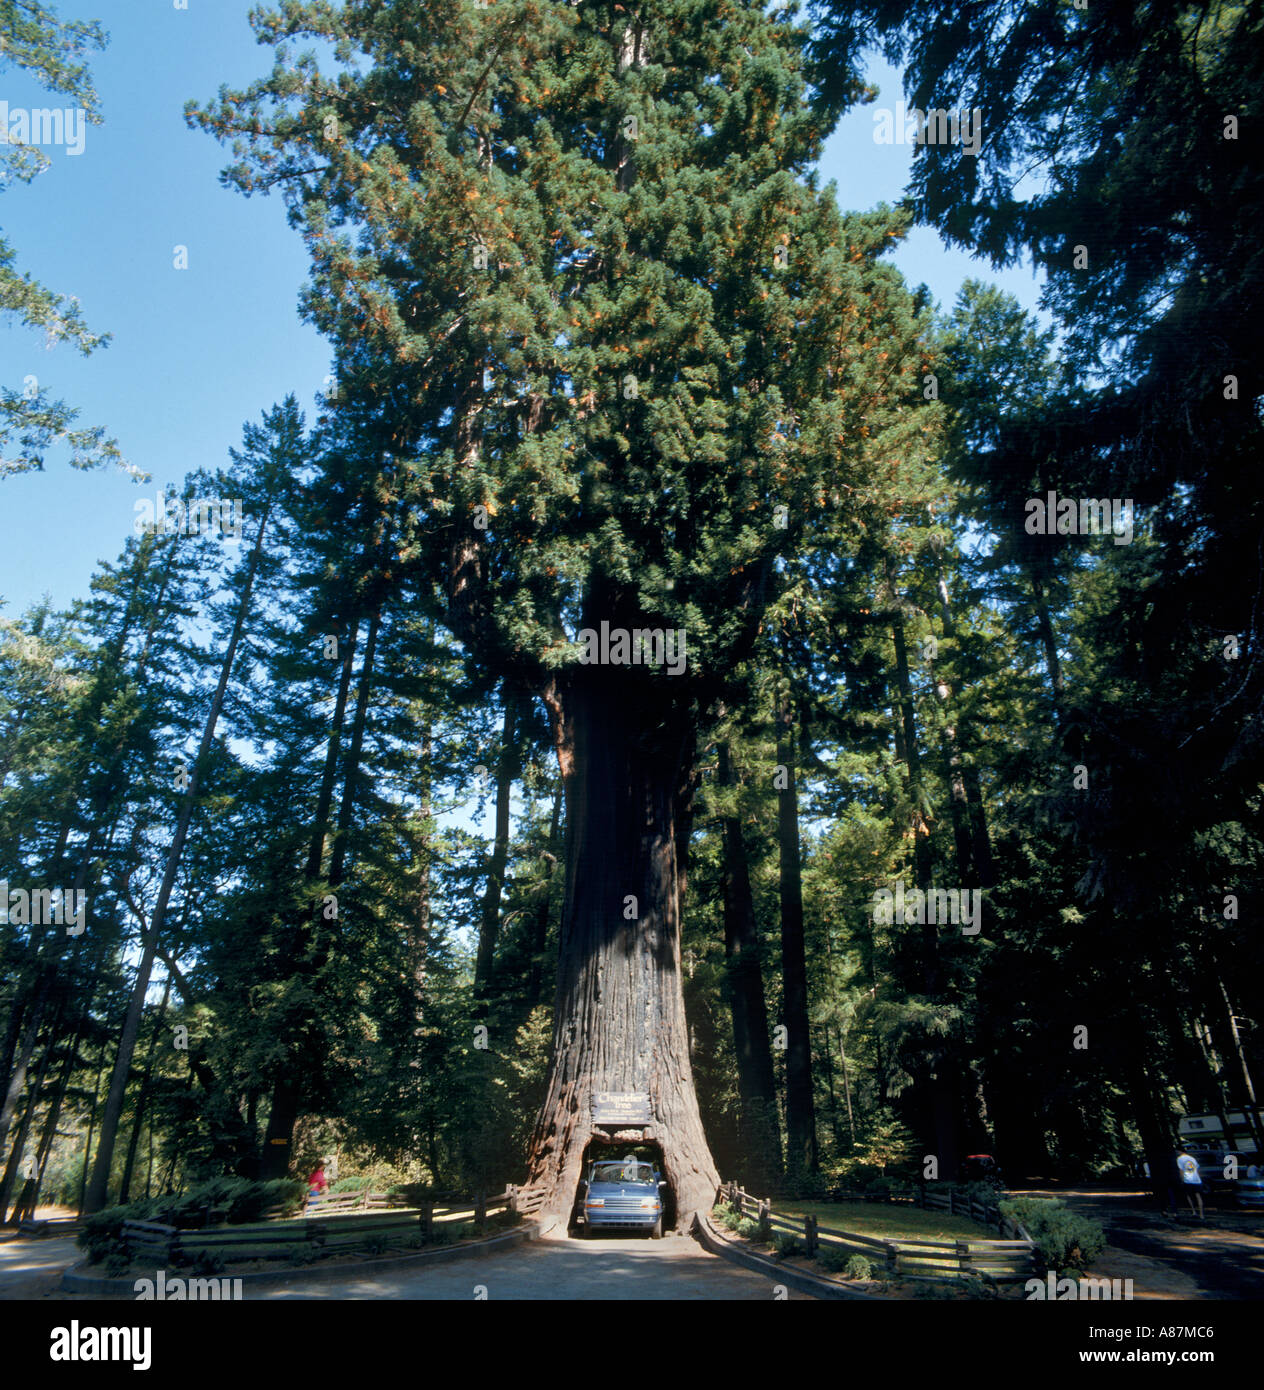 Car driving on a road through the Chandelier Tree, Redwood Forests ...